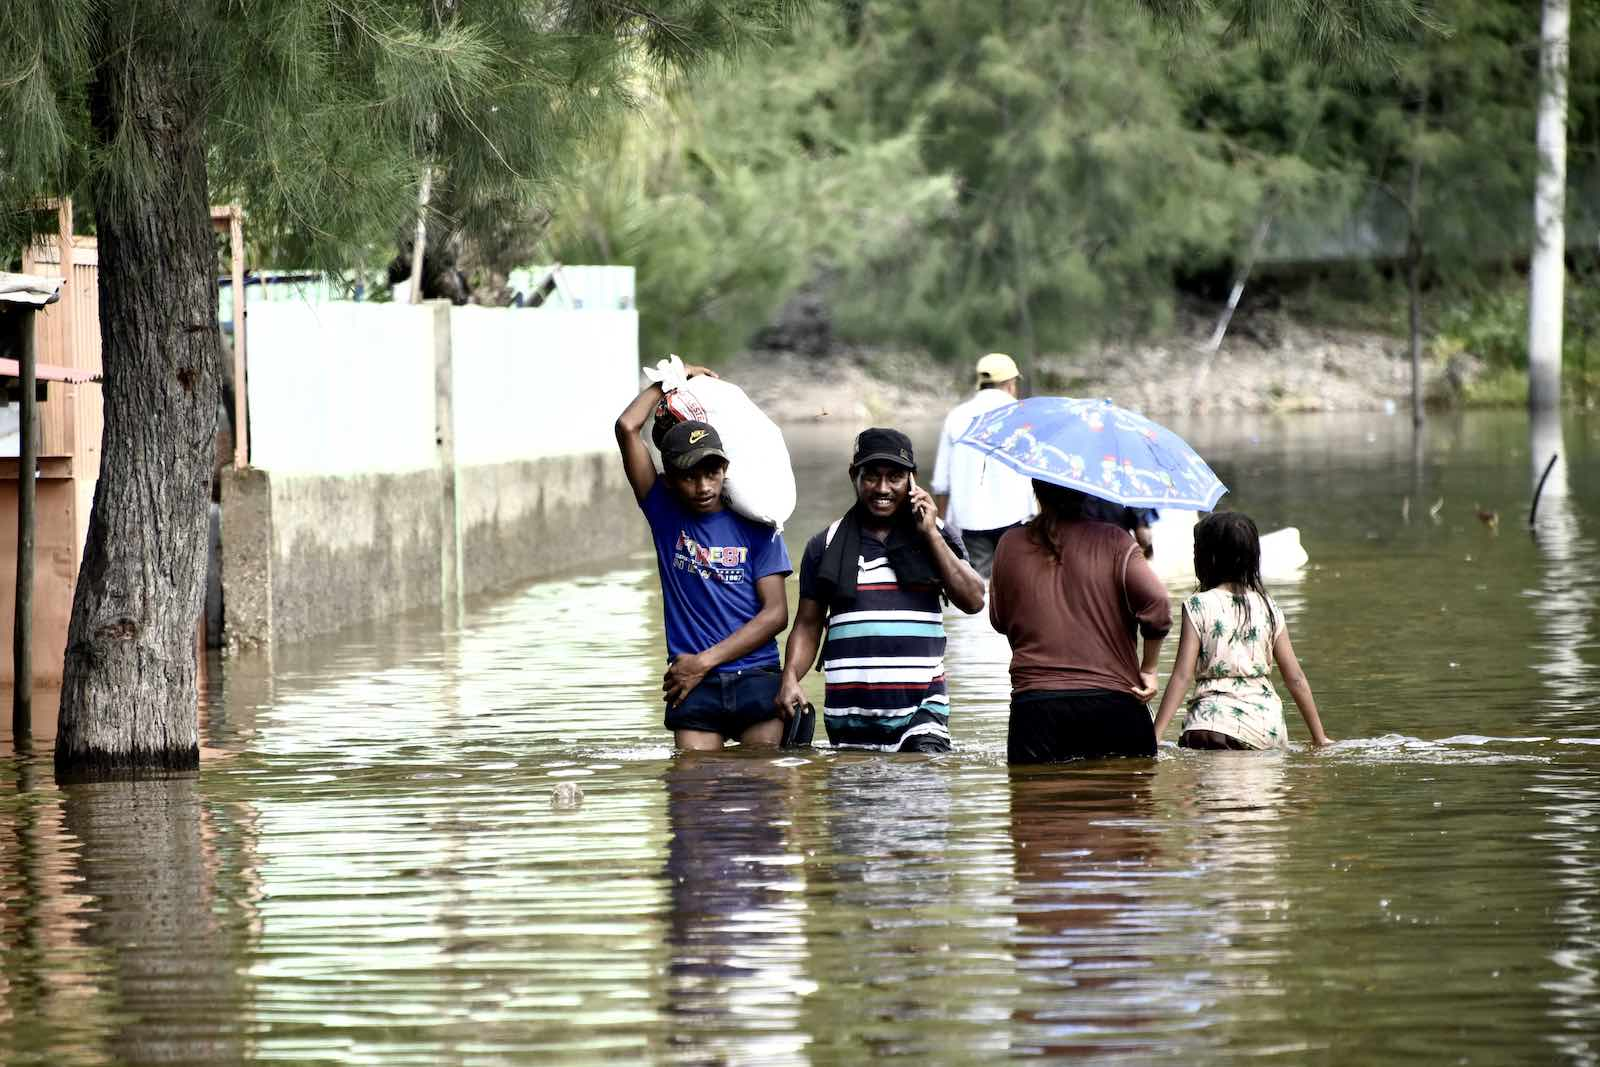 Dili residents wade through a flooded street on 9 April 2021 (Valentino Dariel Sousa/AFP via Getty Images)